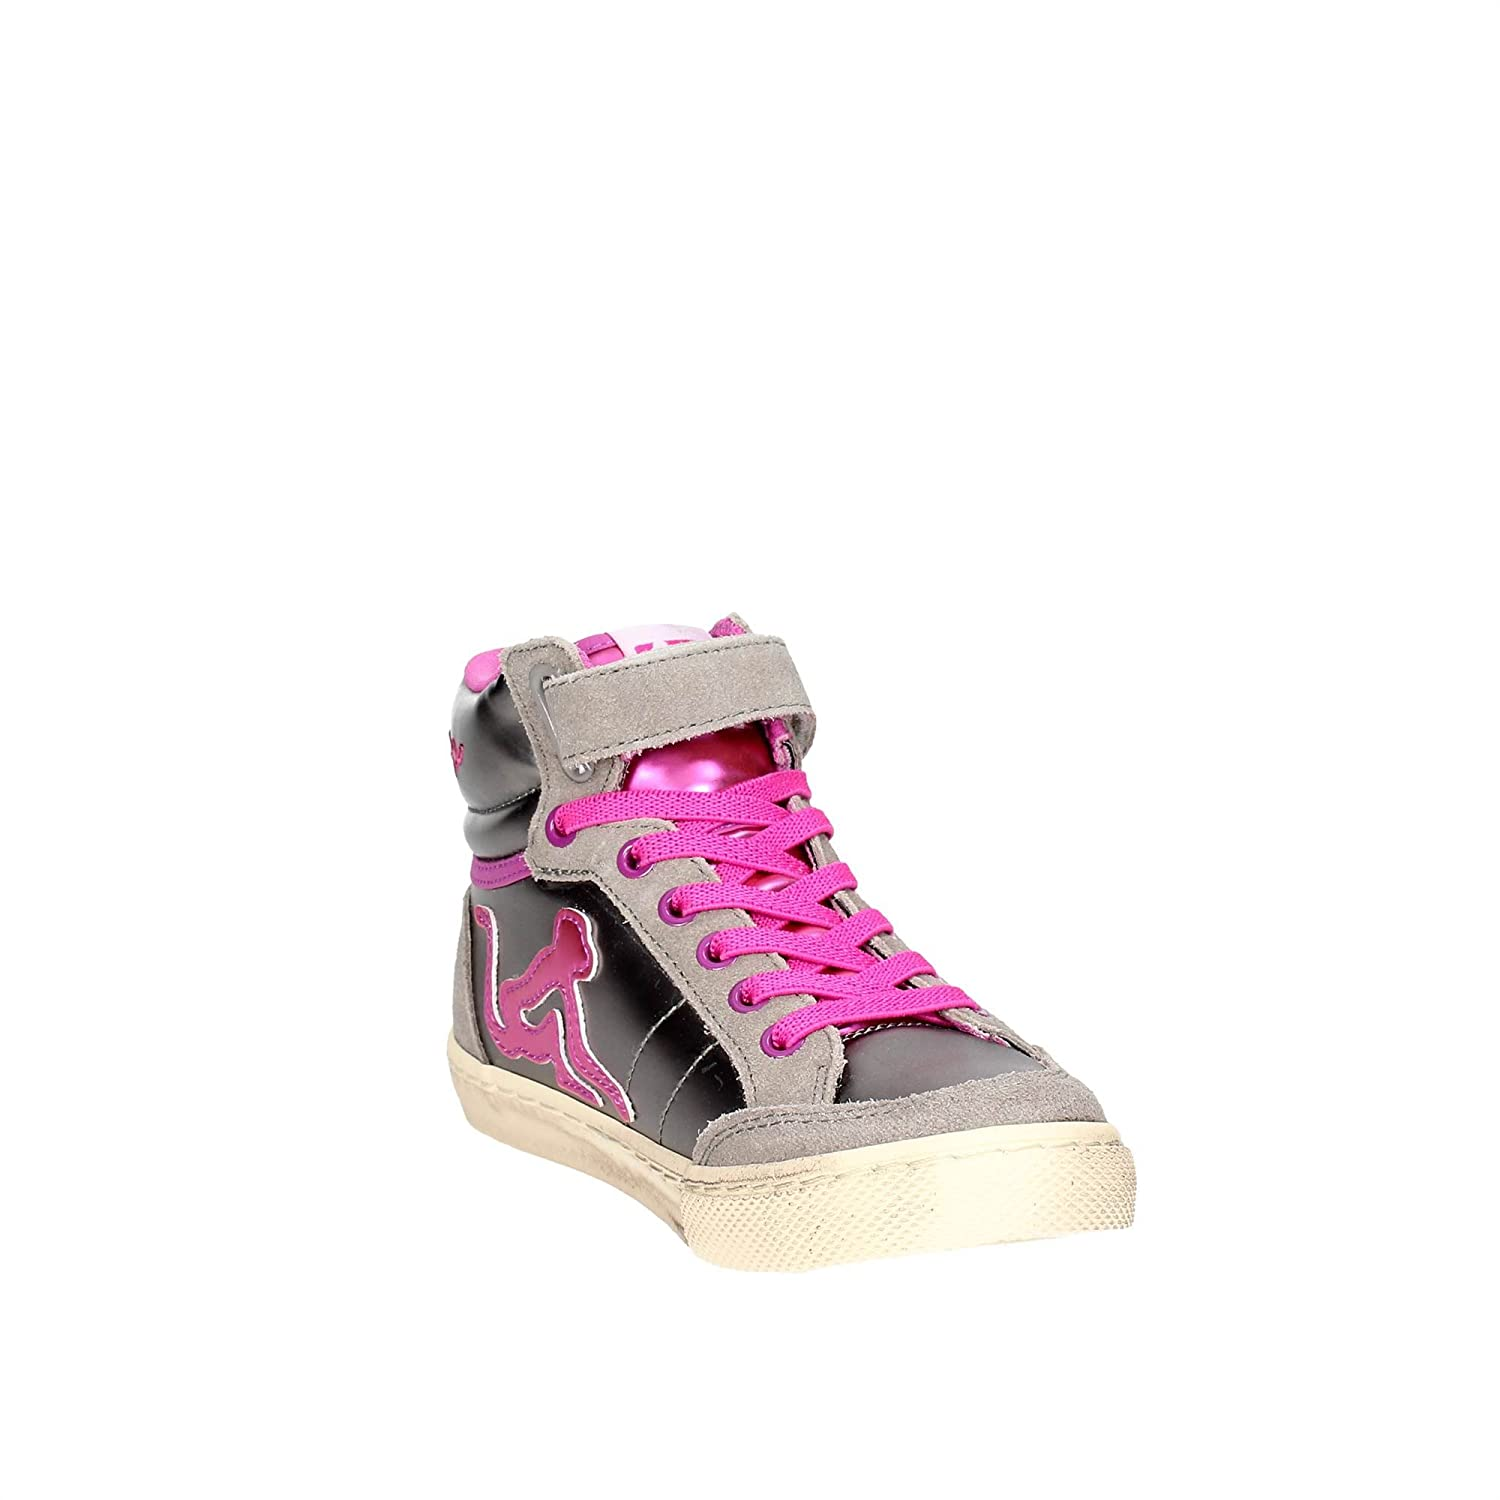 separation shoes a98b0 5a350 DrunknMunky Girls  Boston Rockstar Hi-Top Trainers, Silver  Amazon.co.uk   Shoes   Bags